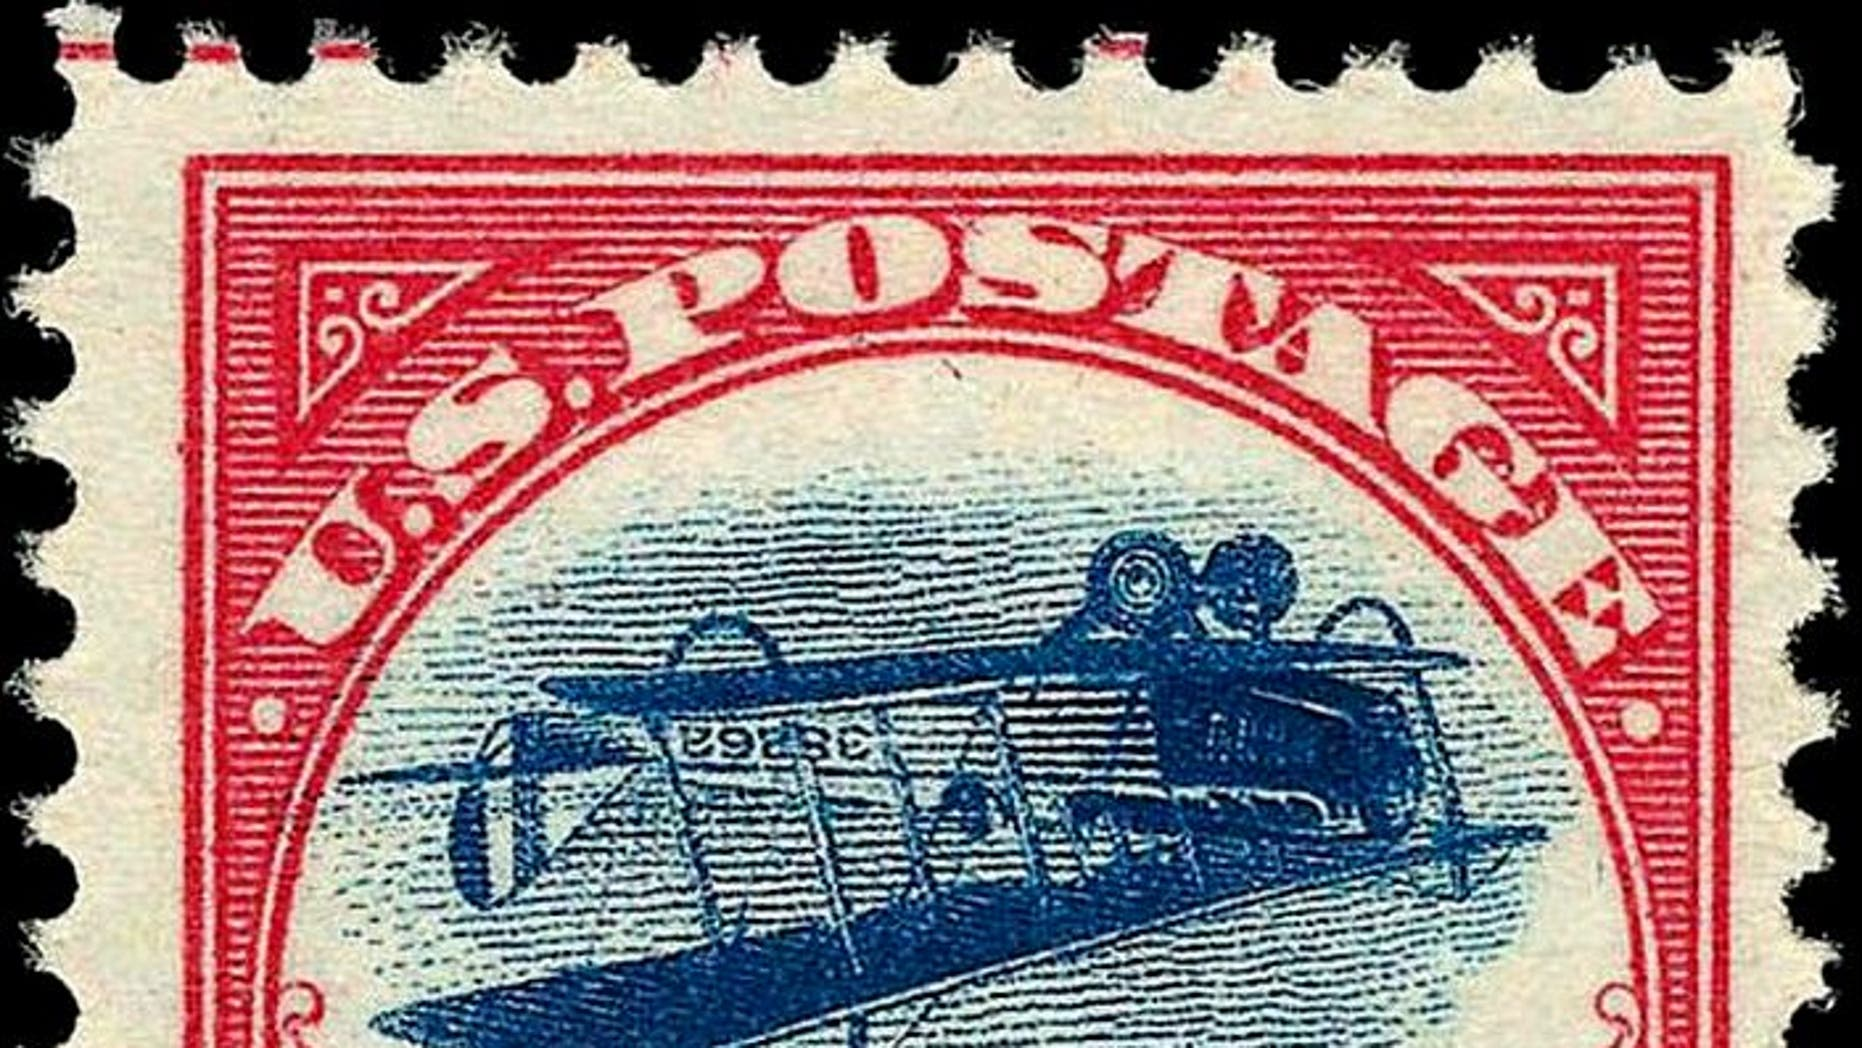 Donald Sundman, president of New York's Mystic Stamp Company, says he will pony up $50,000 apiece for the stolen stamps that feature an upside-down Curtiss JN-4 biplane.